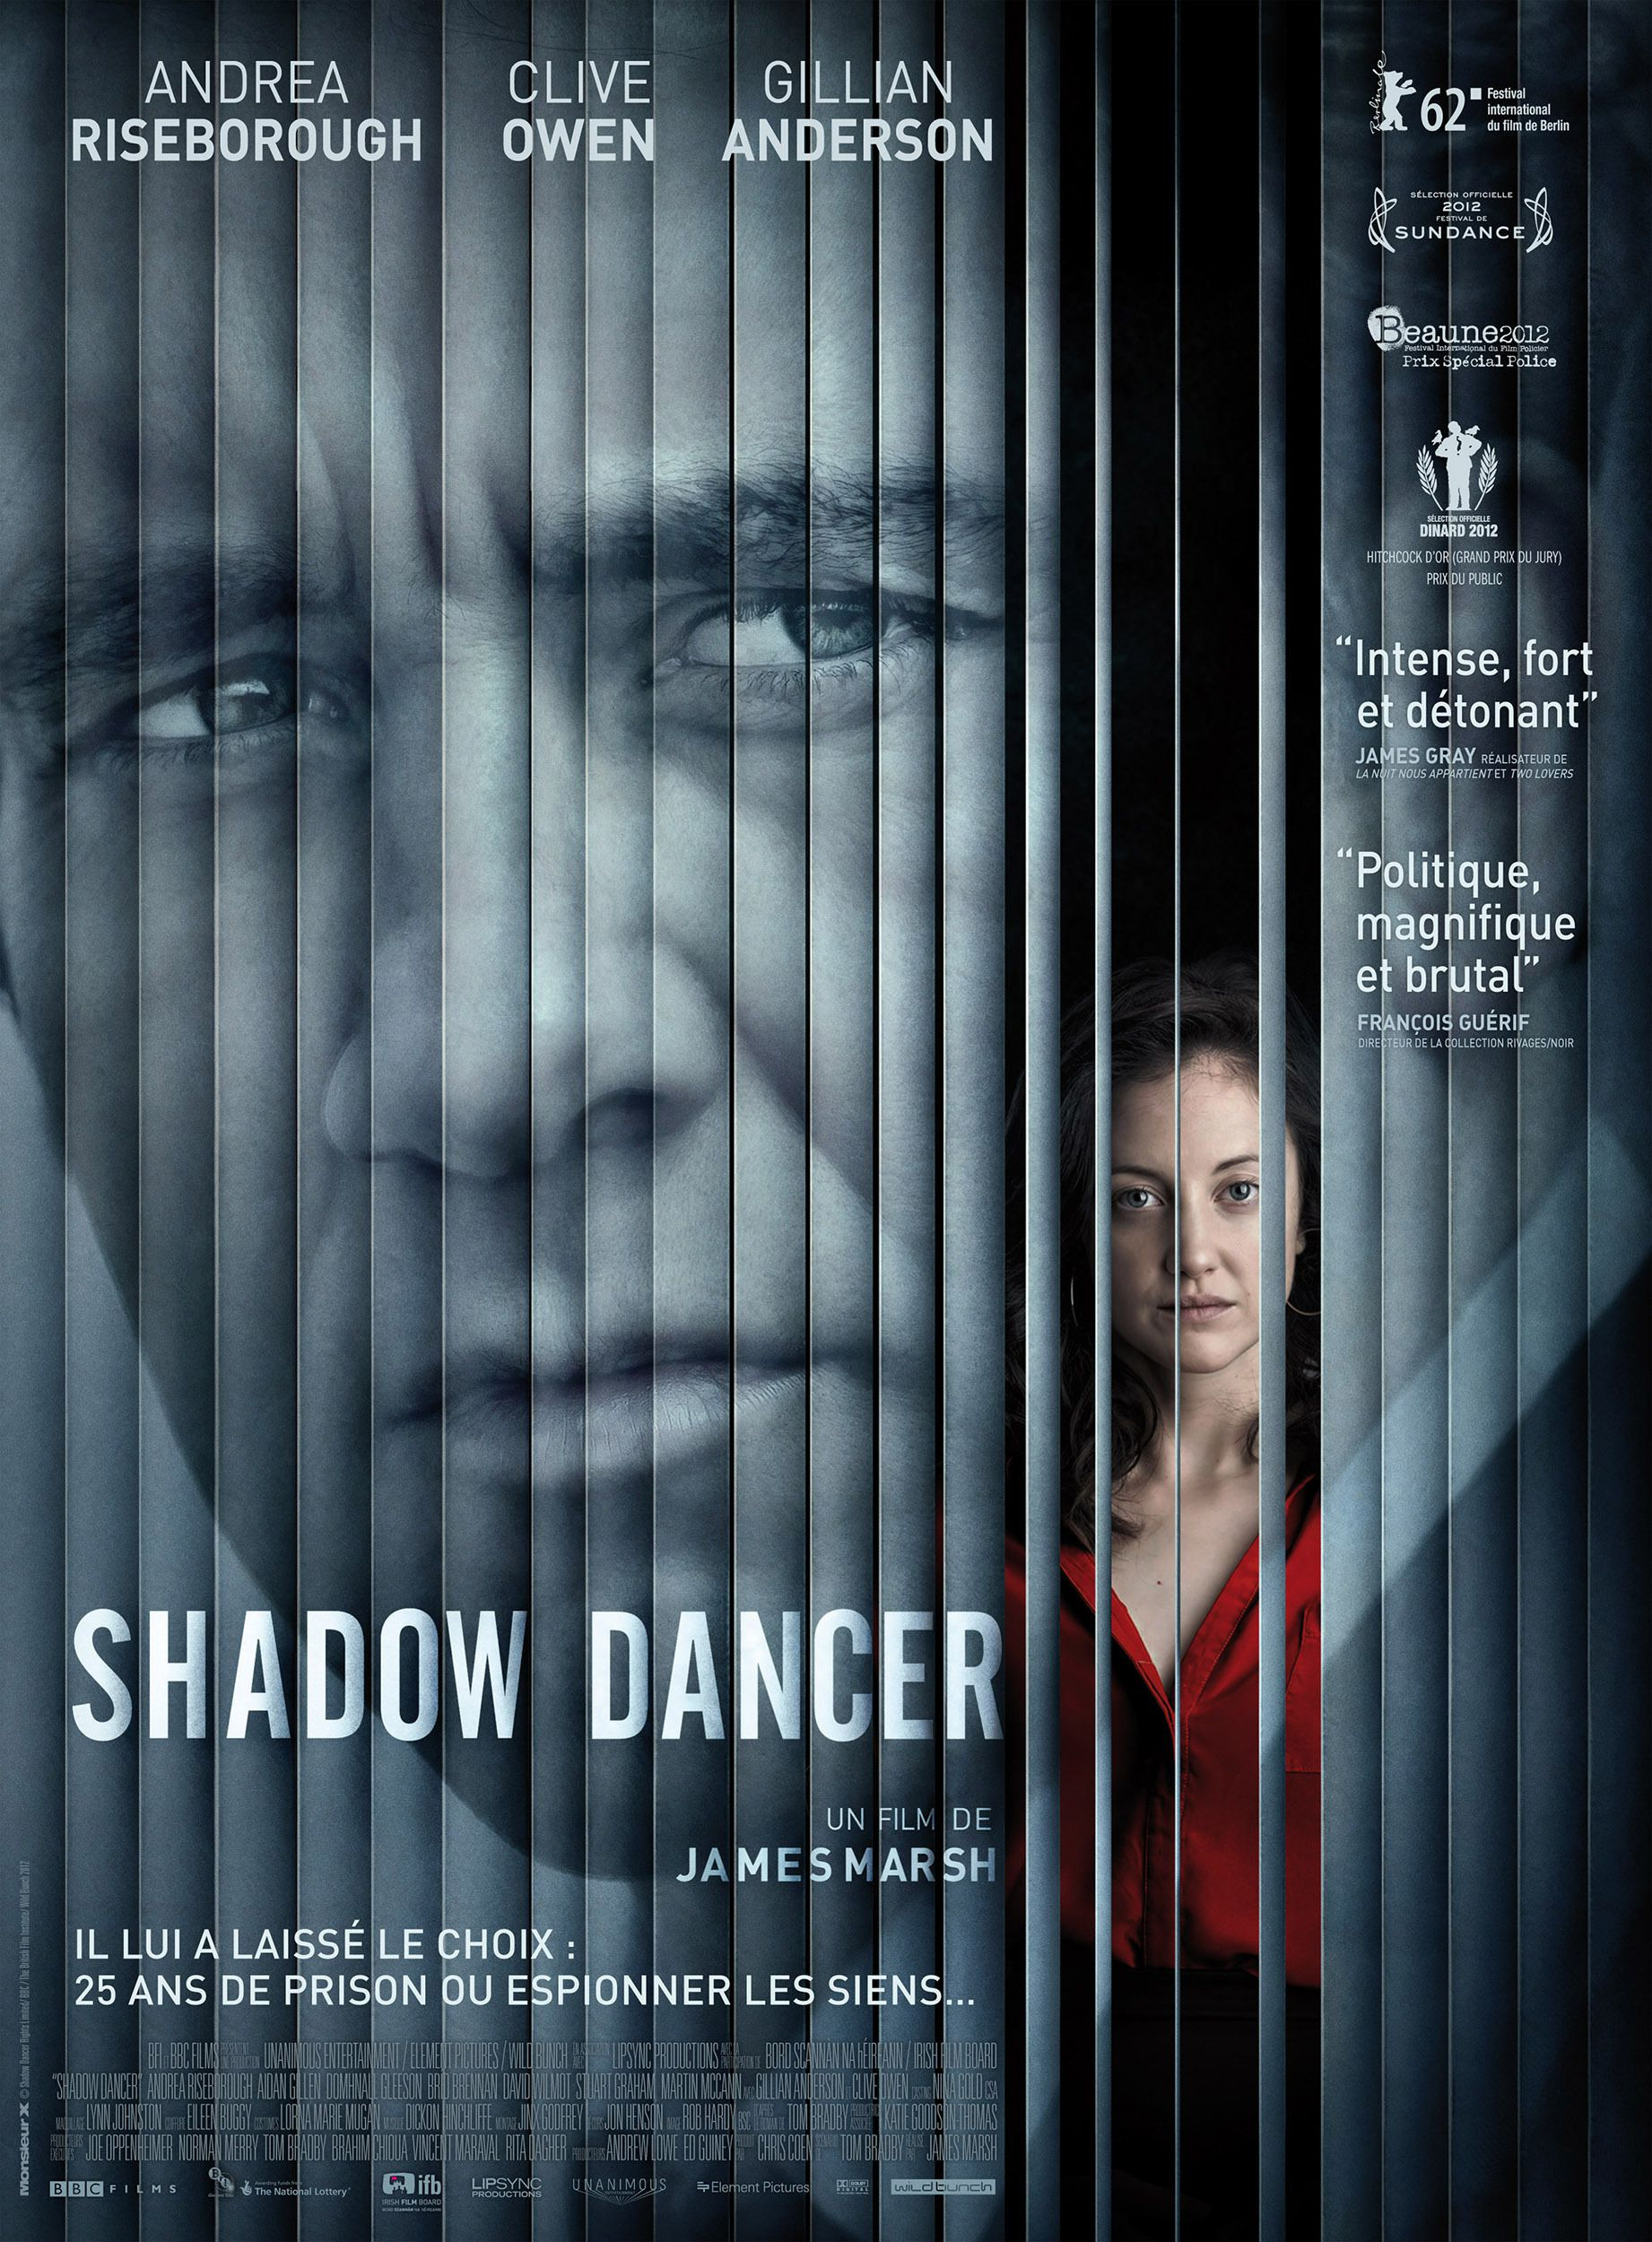 Shadow Dancer - Film (2012)